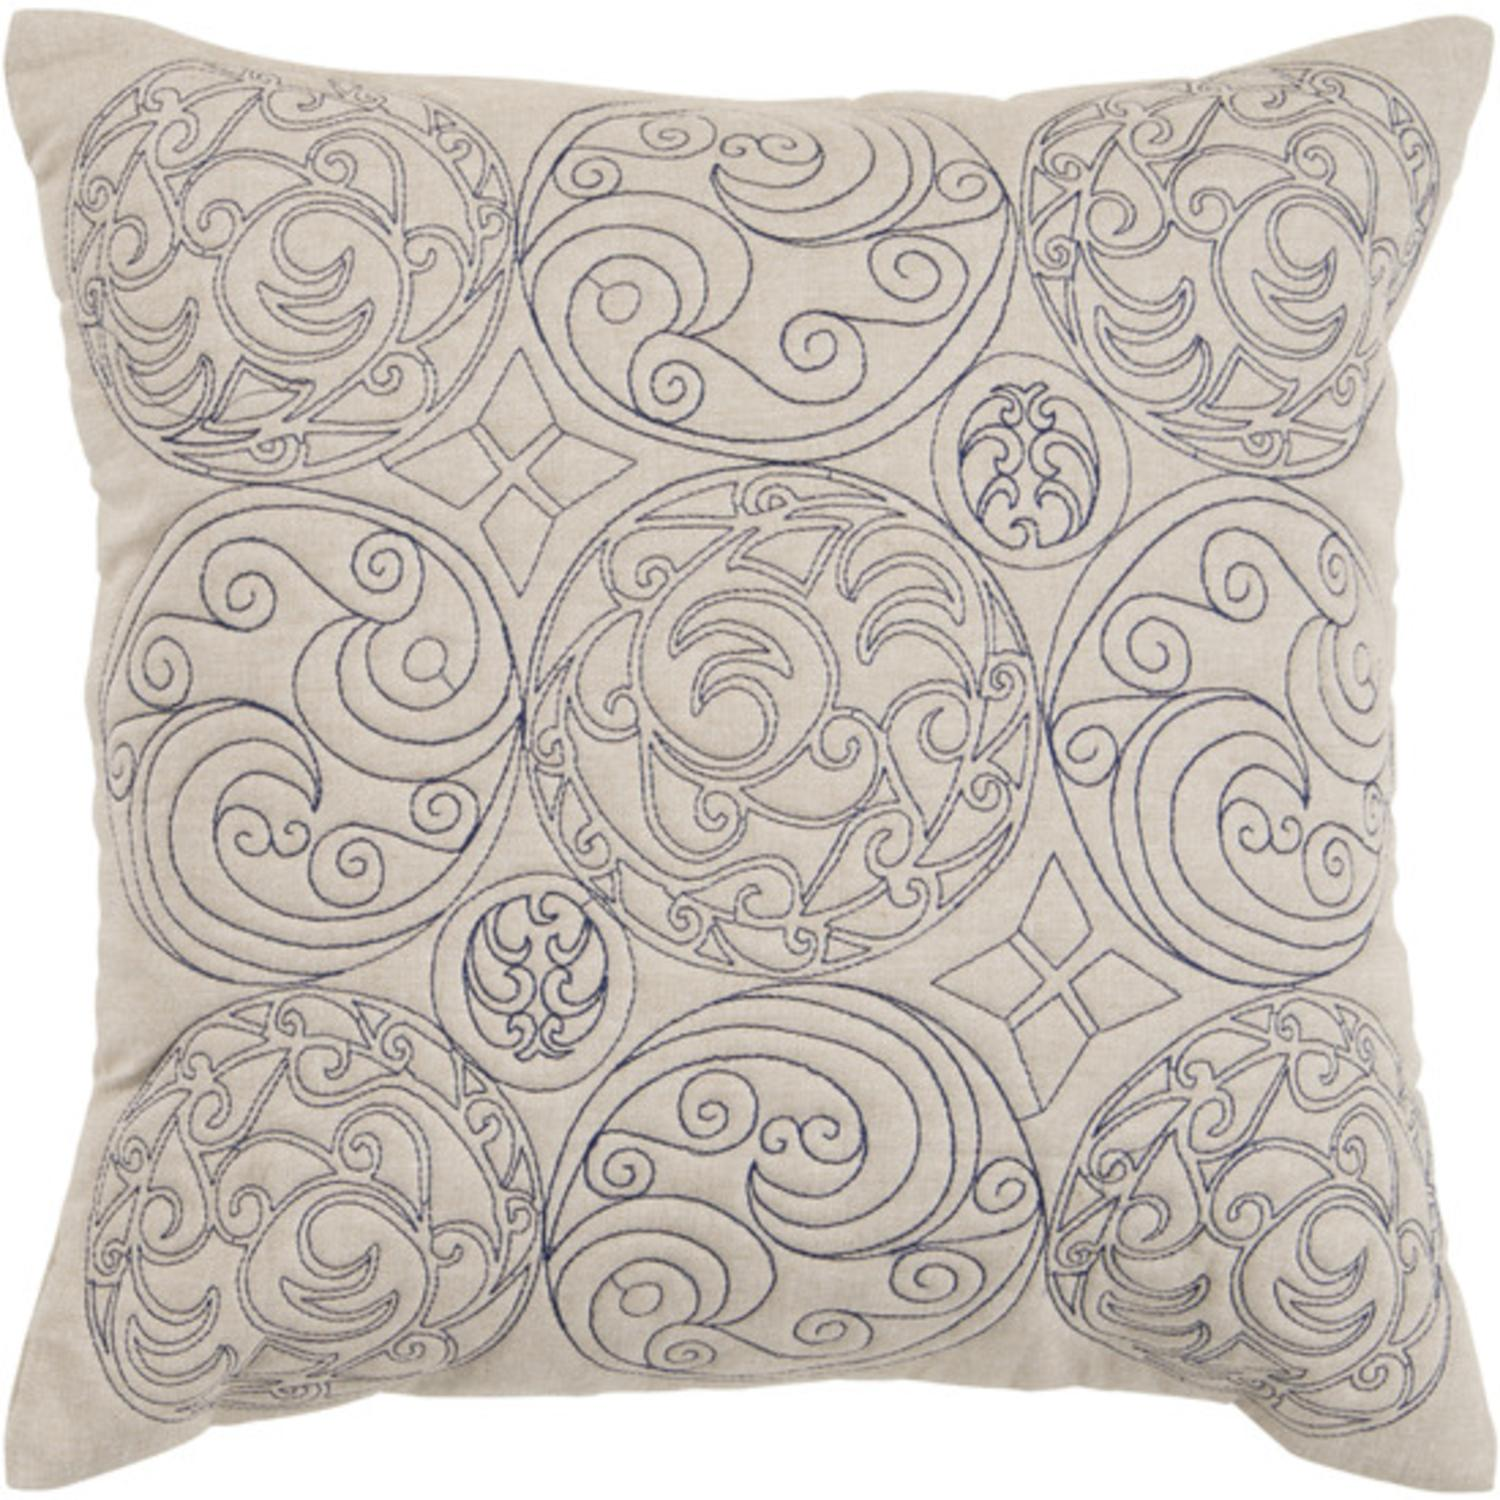 "18"" Medieval Circle Scroll Black Ink and Parchment Decorative Throw Pillow"